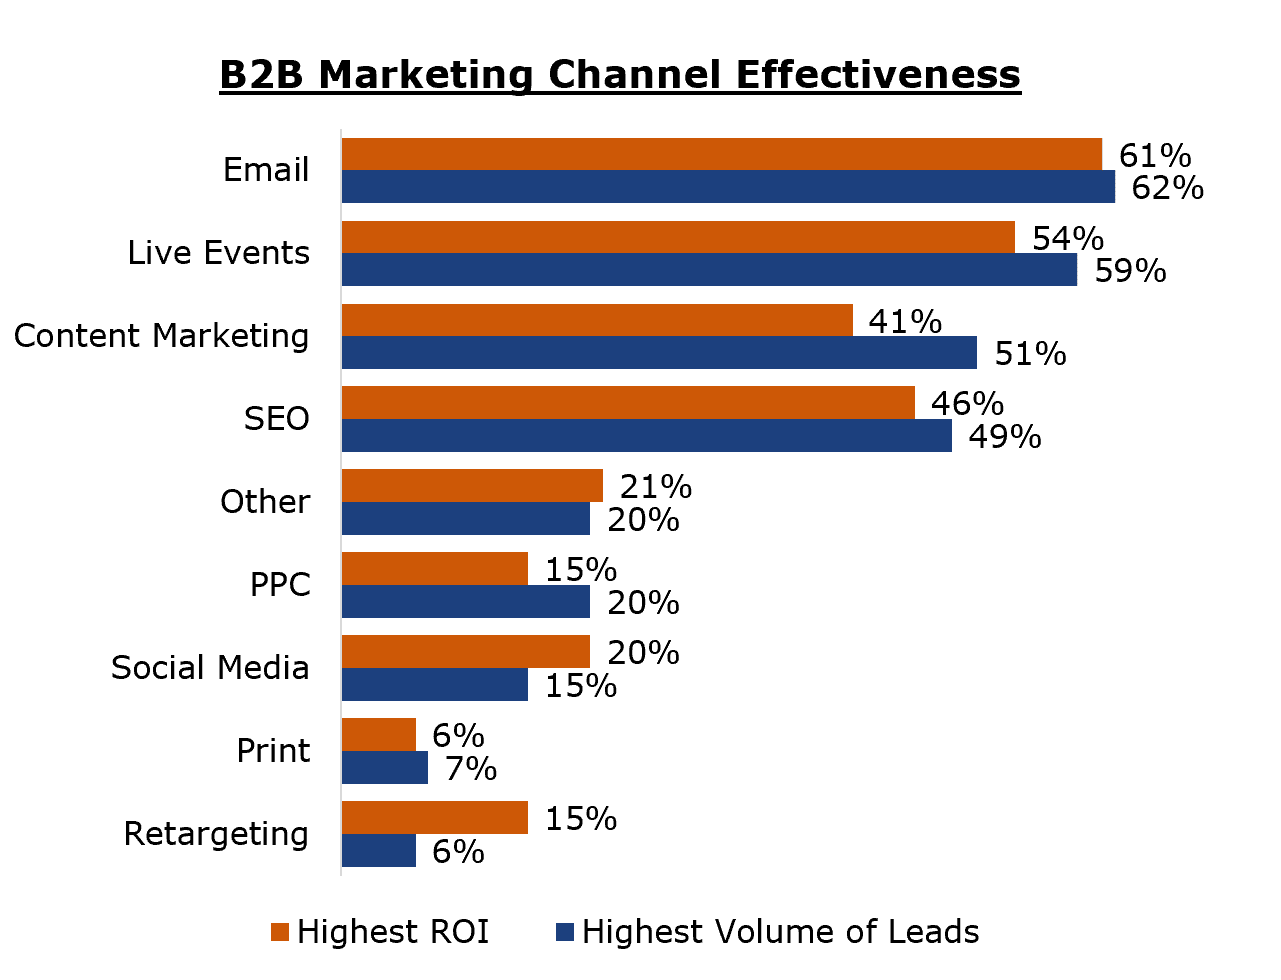 Chart of B2B Marketing Effectiveness by Channel